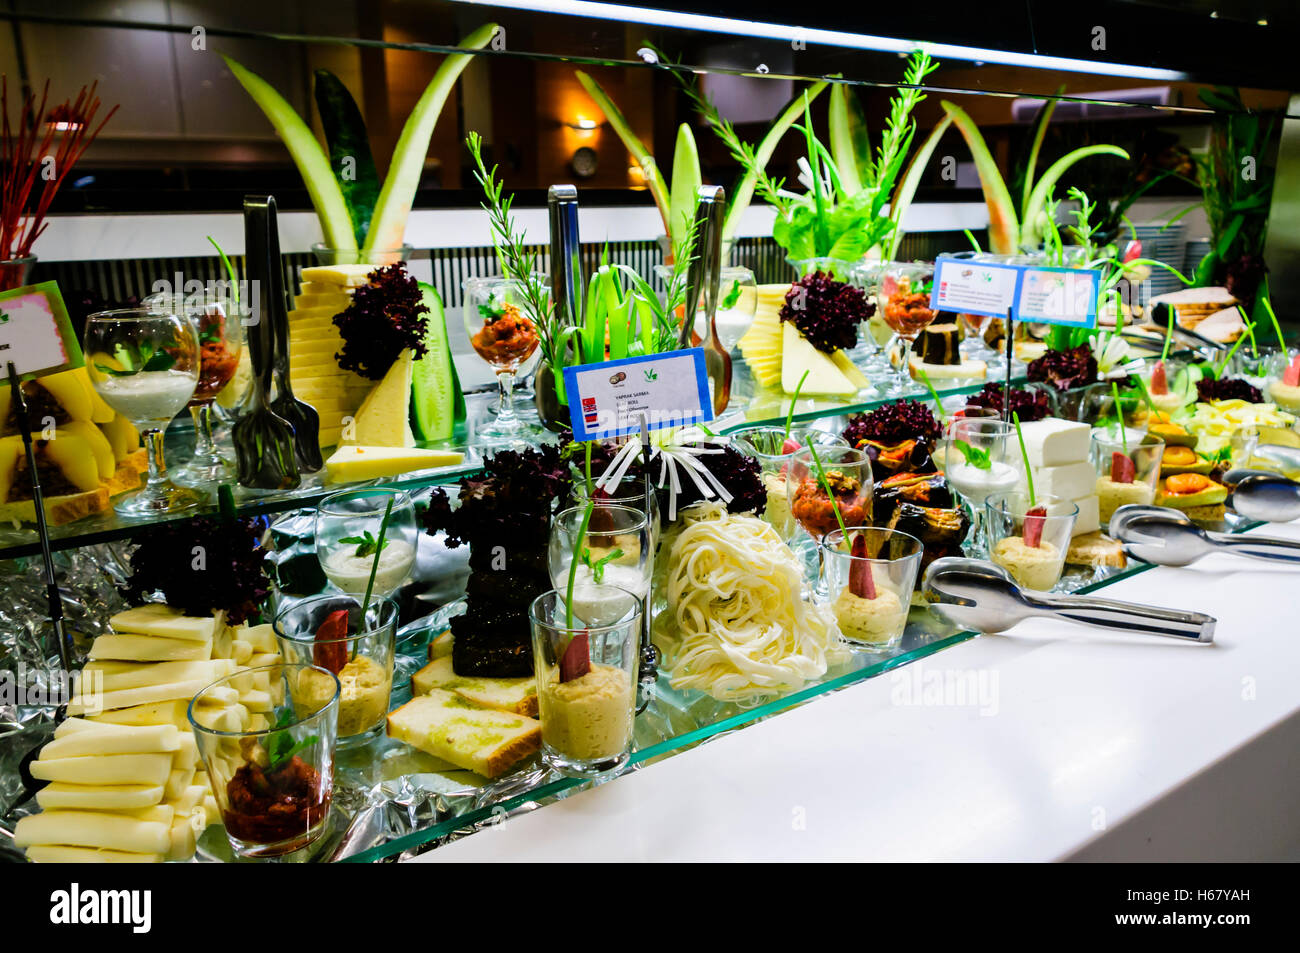 Large selection of cheese with ornate decoration at the buffet of a hotel restaurant - Stock Image